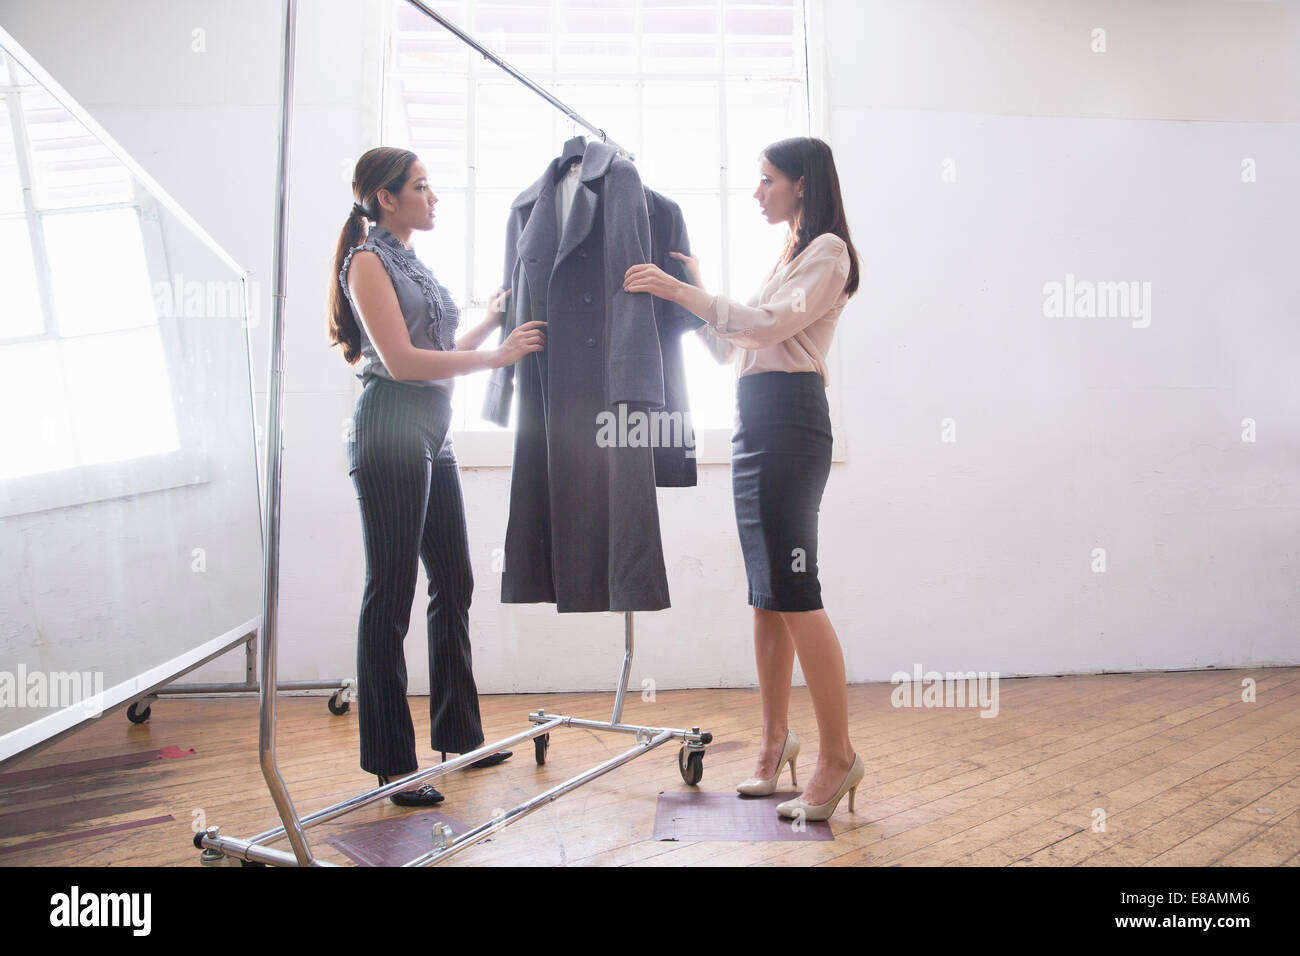 Le choix d'affaires vêtements intelligents de tringle Photo Stock